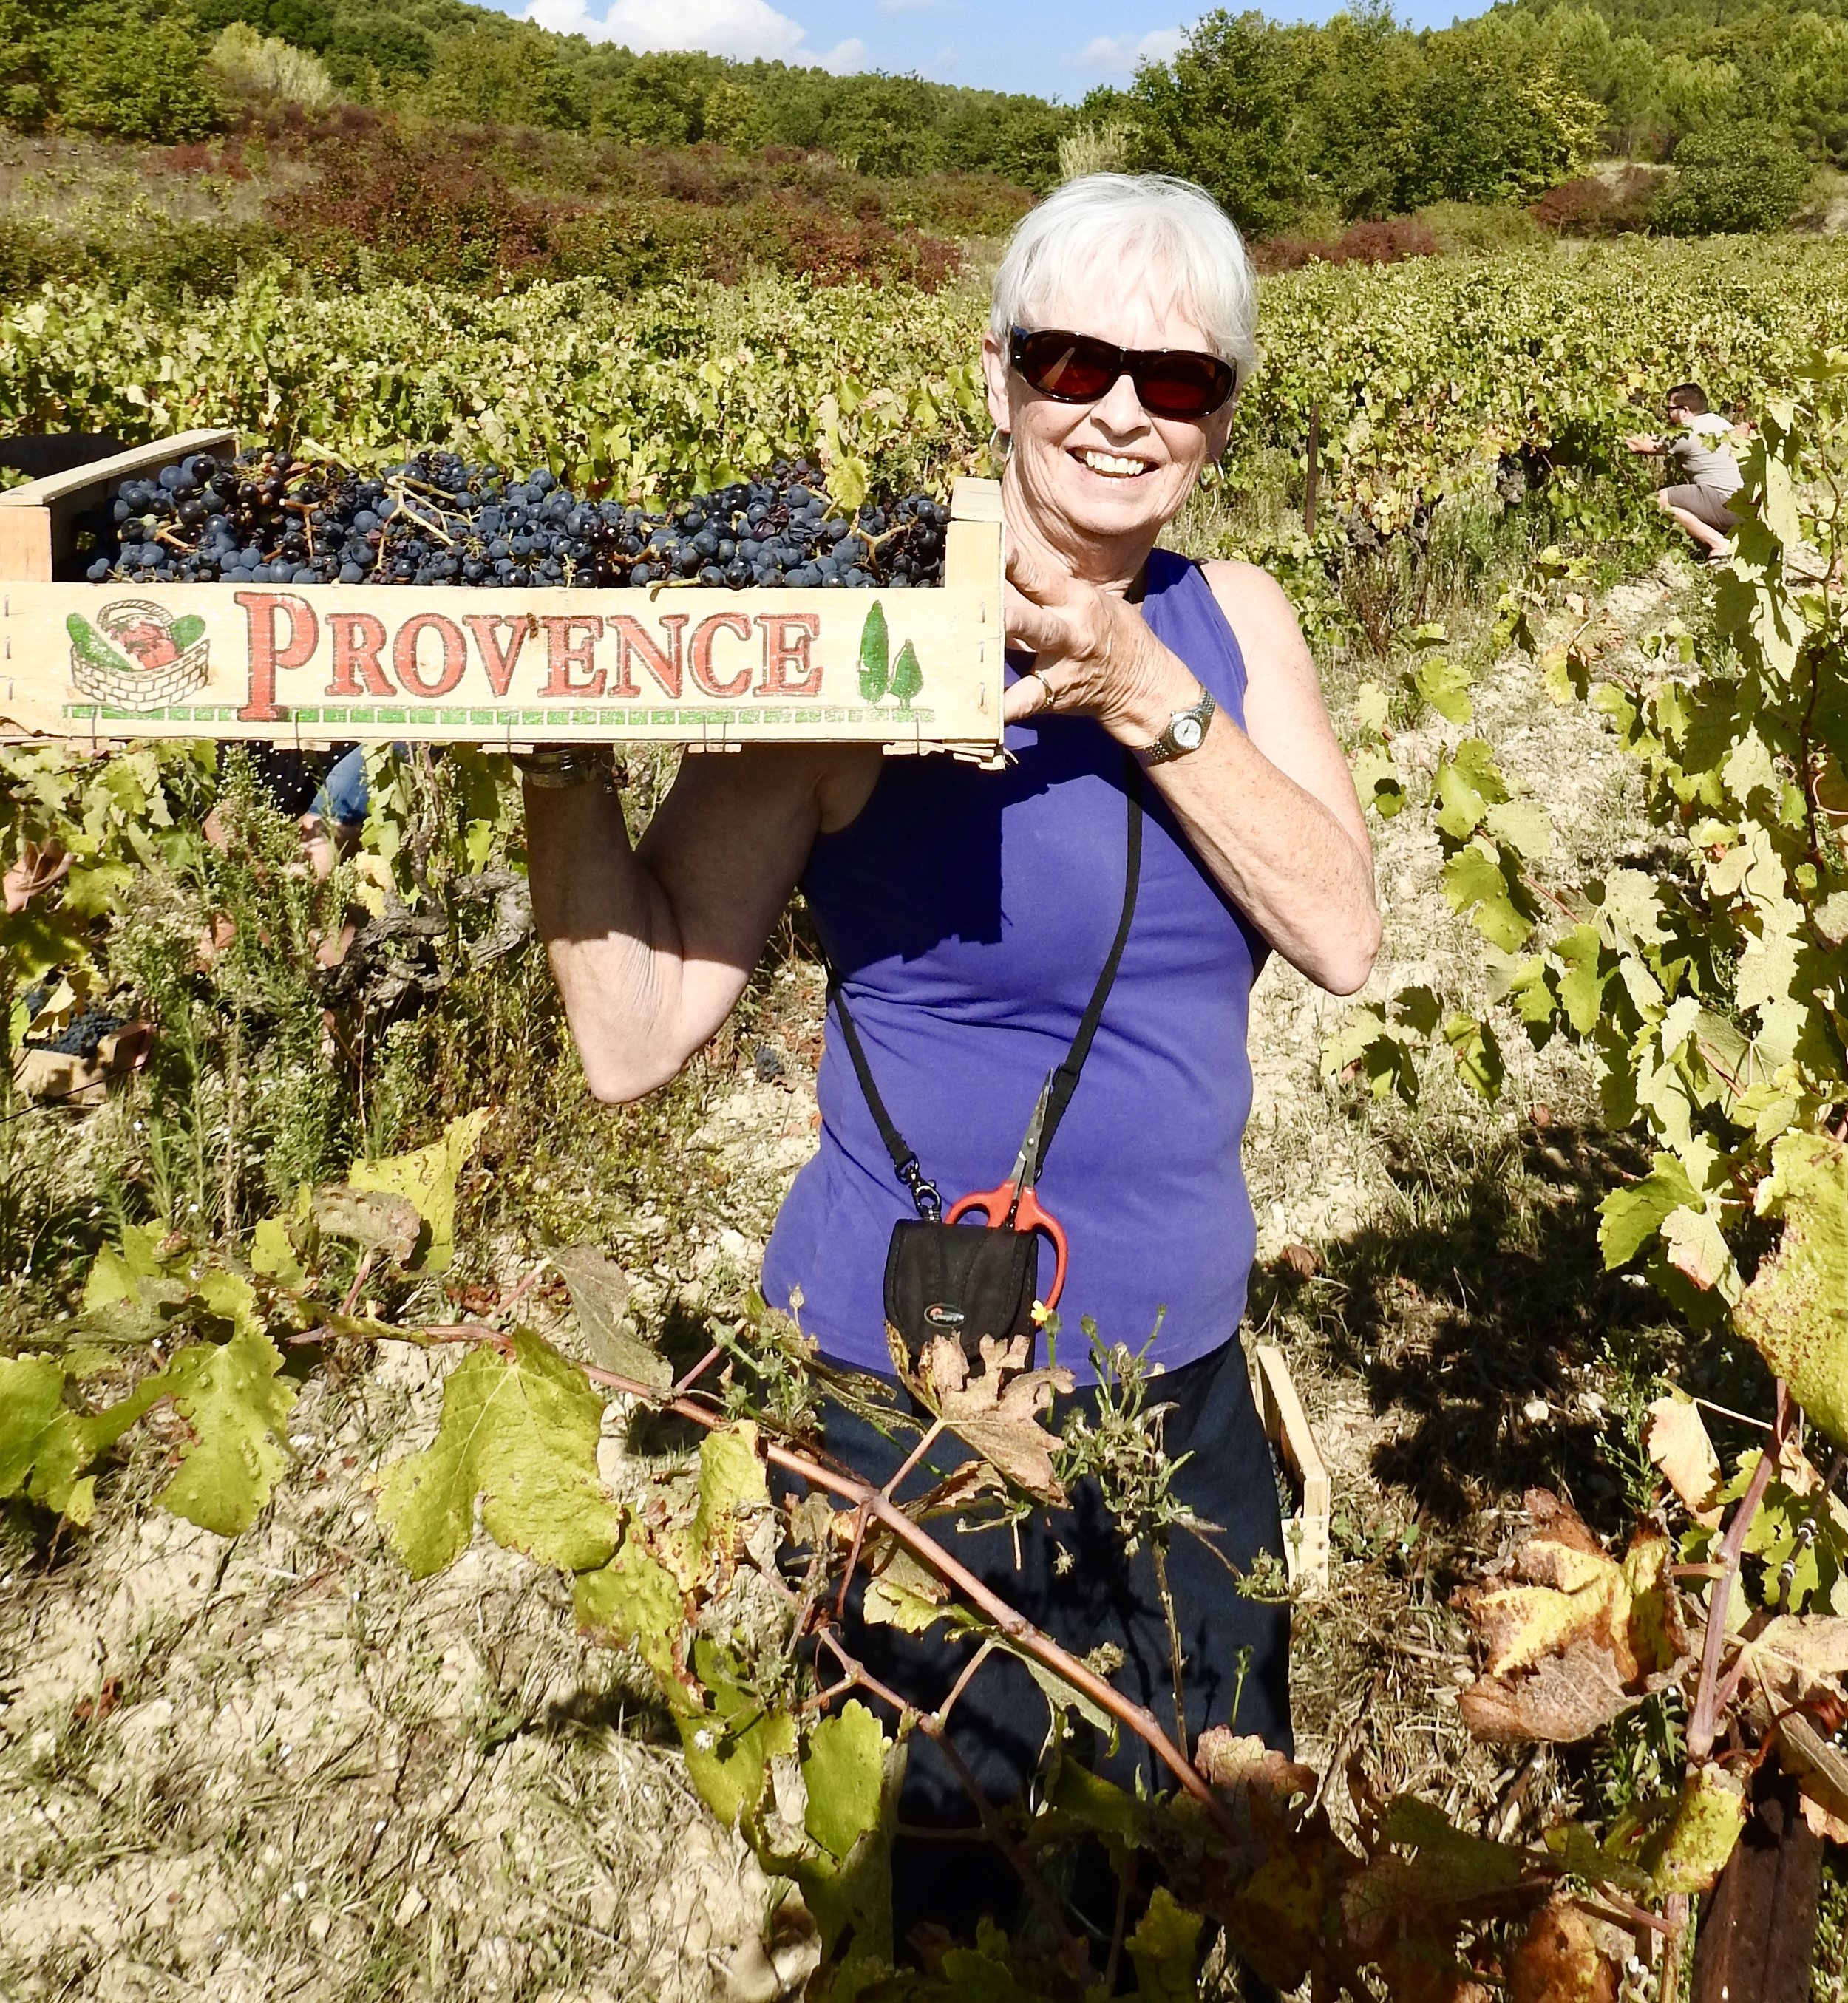 Provence tour review